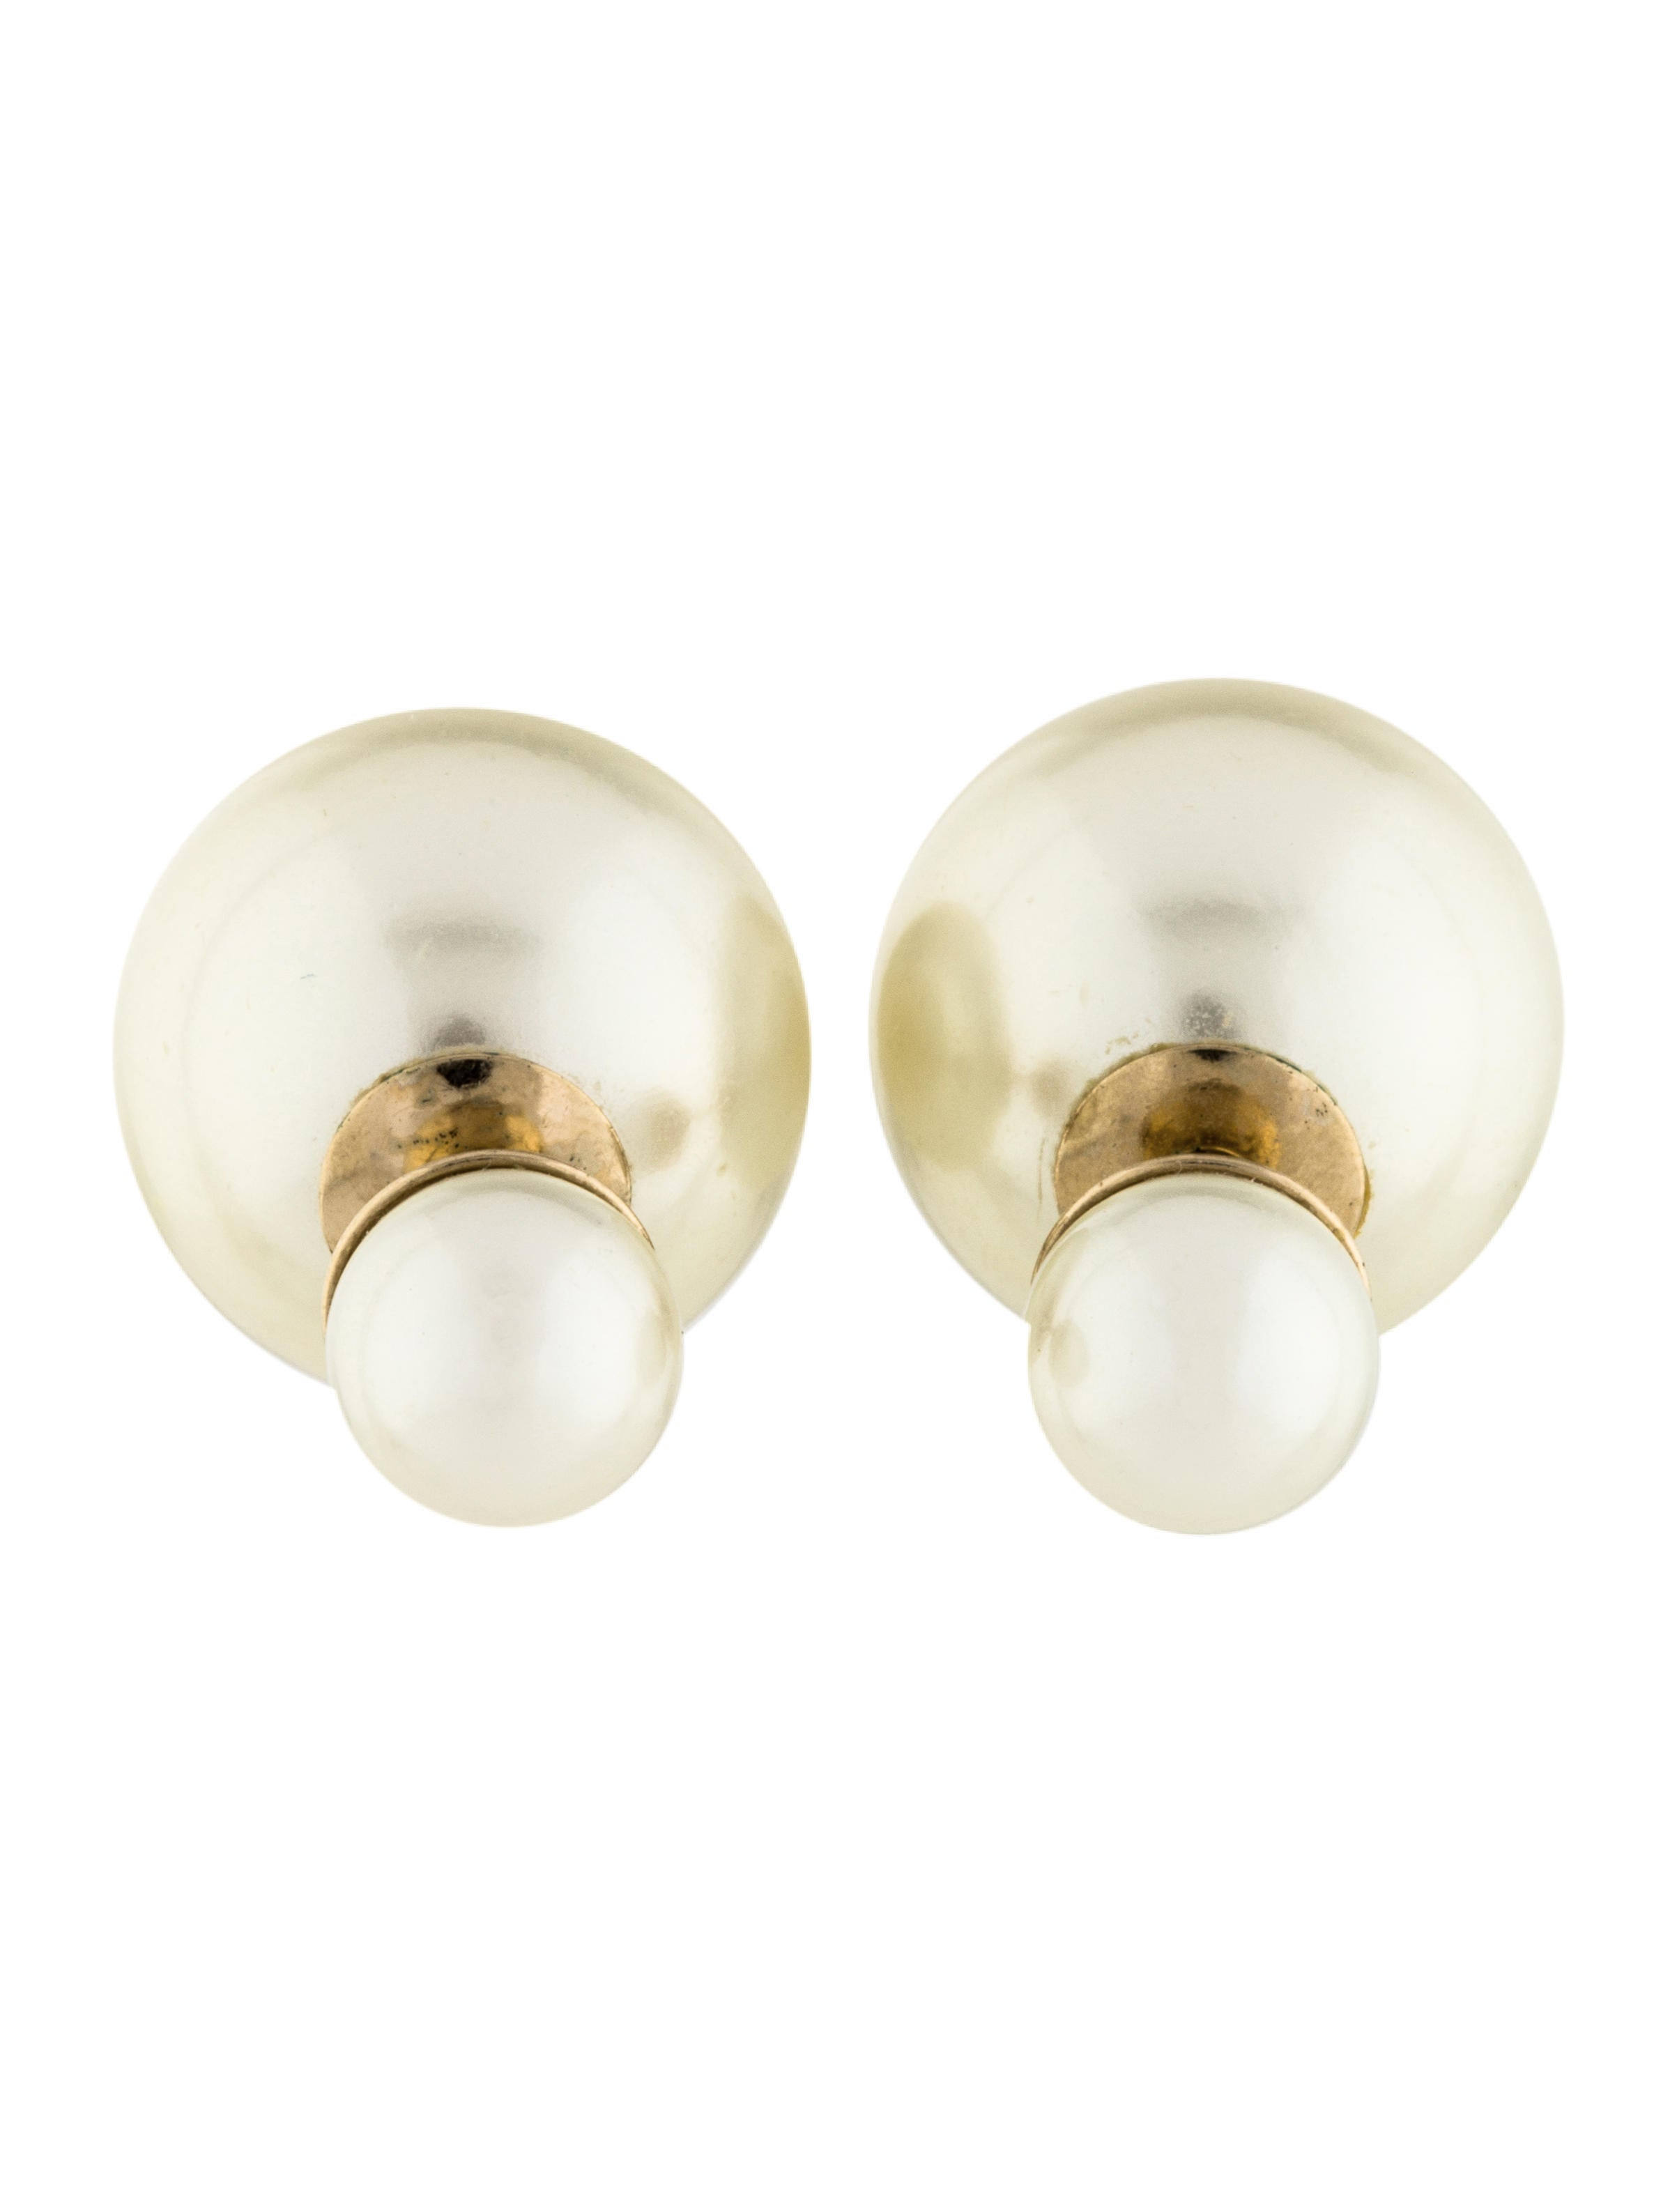 faux metallic stud jewelry in pearl lyst earrings gallery crystal orsini silver adriana